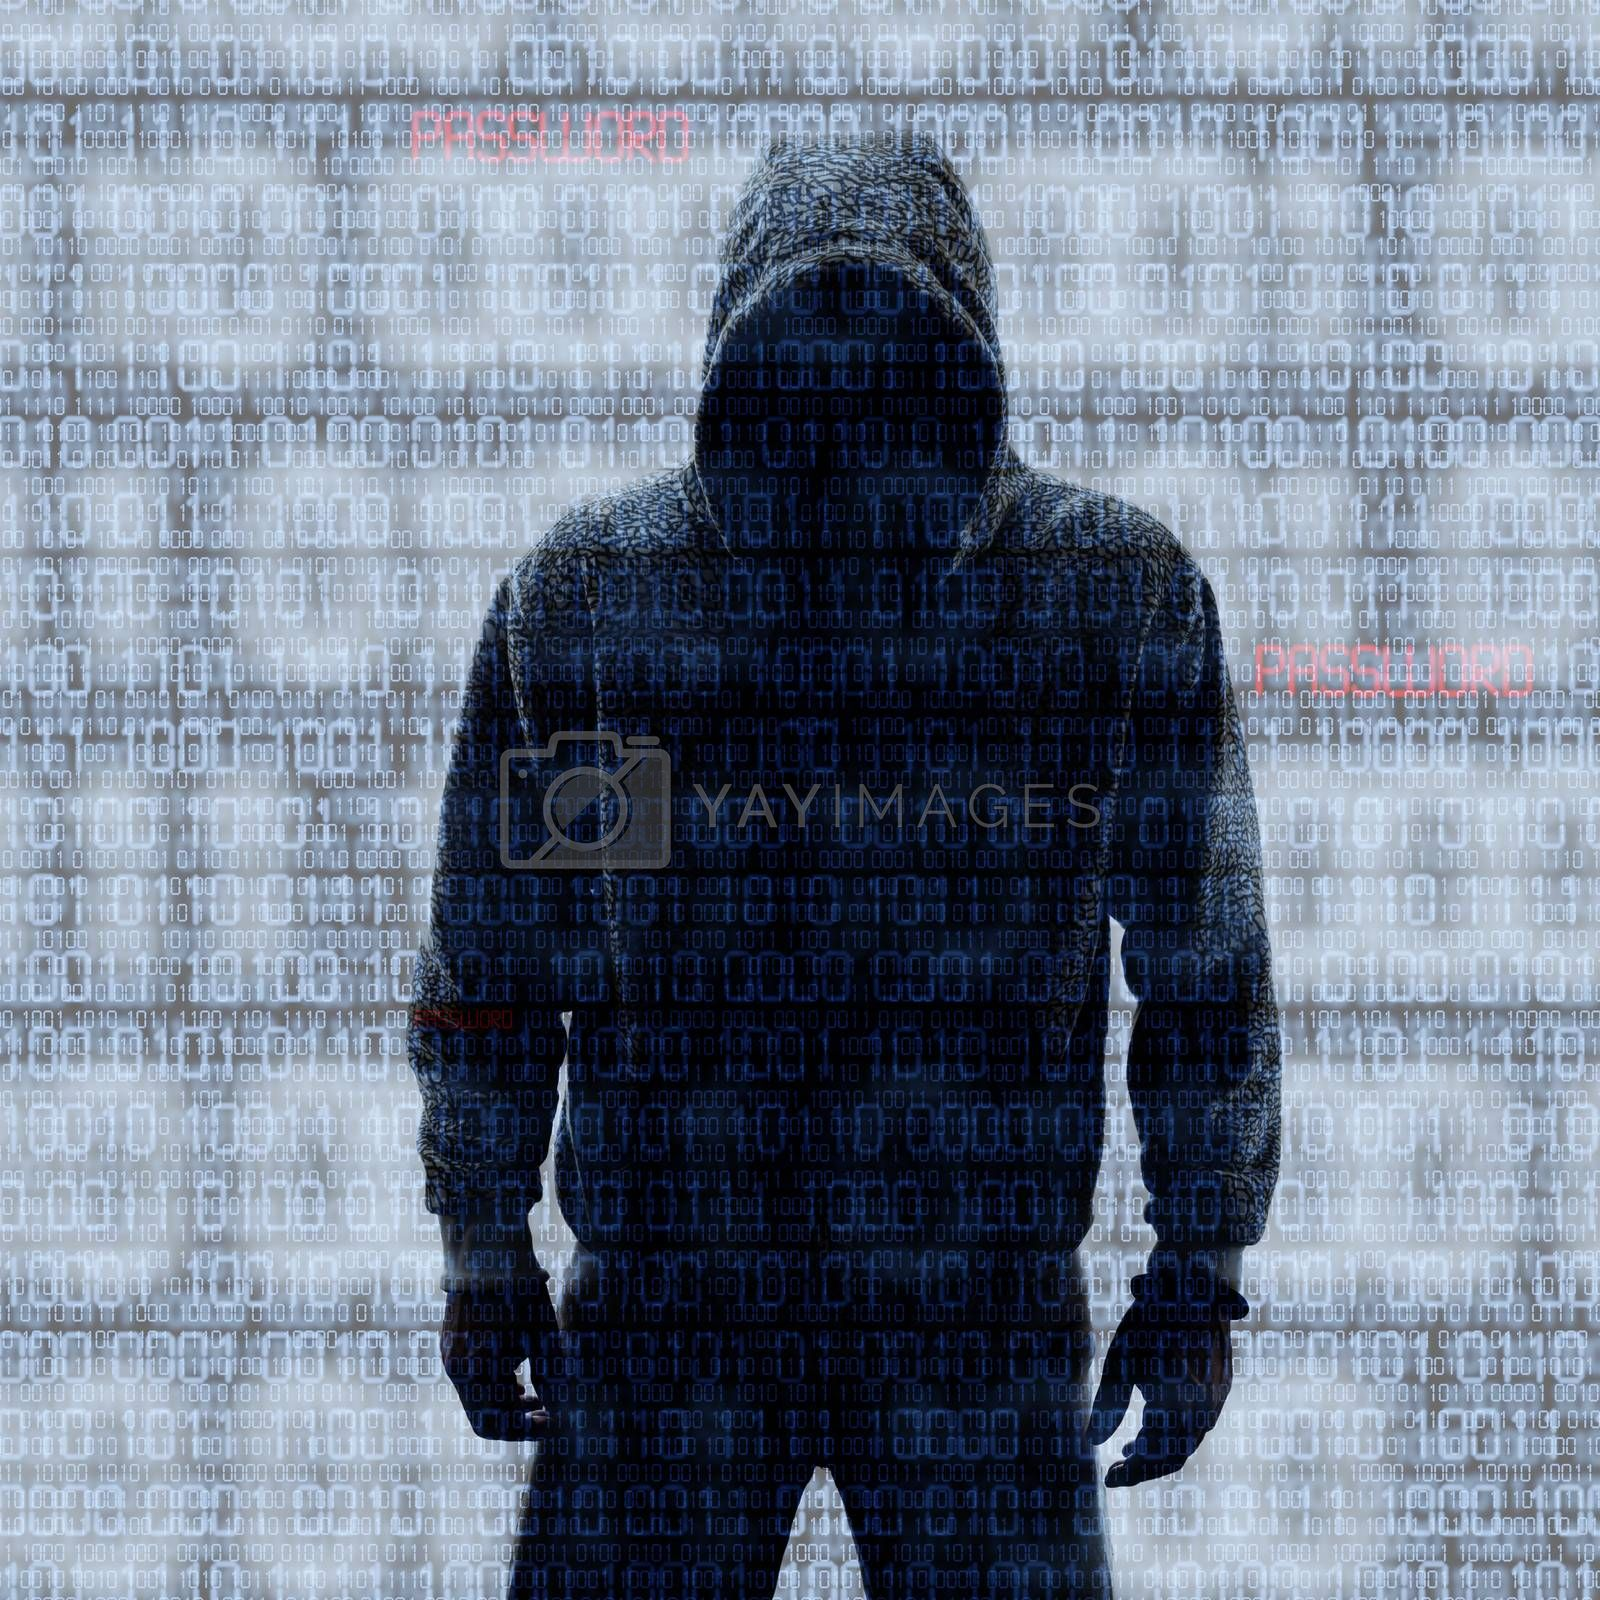 Hackey in Silhouette and Binary codes background